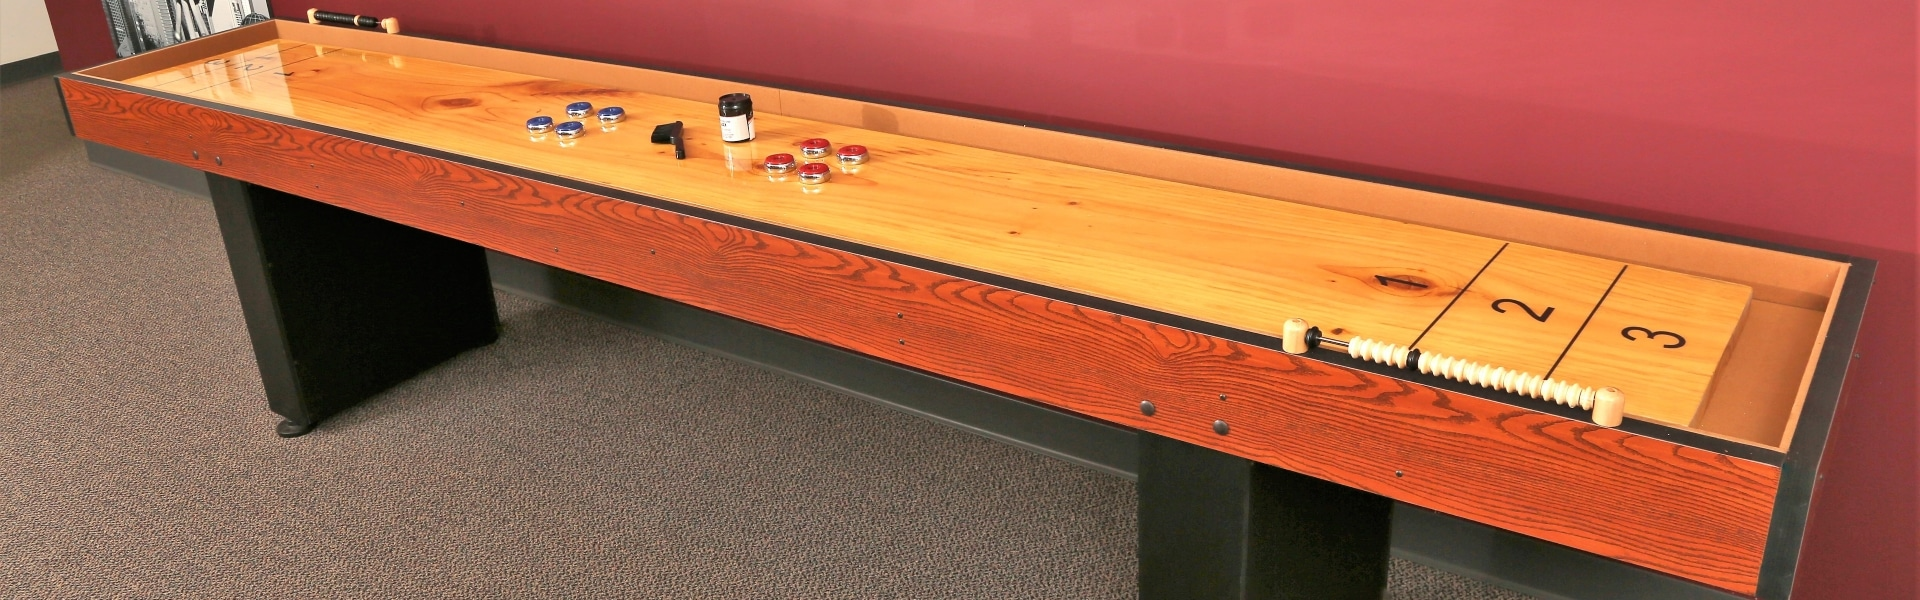 Best Shuffleboard Tables Reviewed in Detail